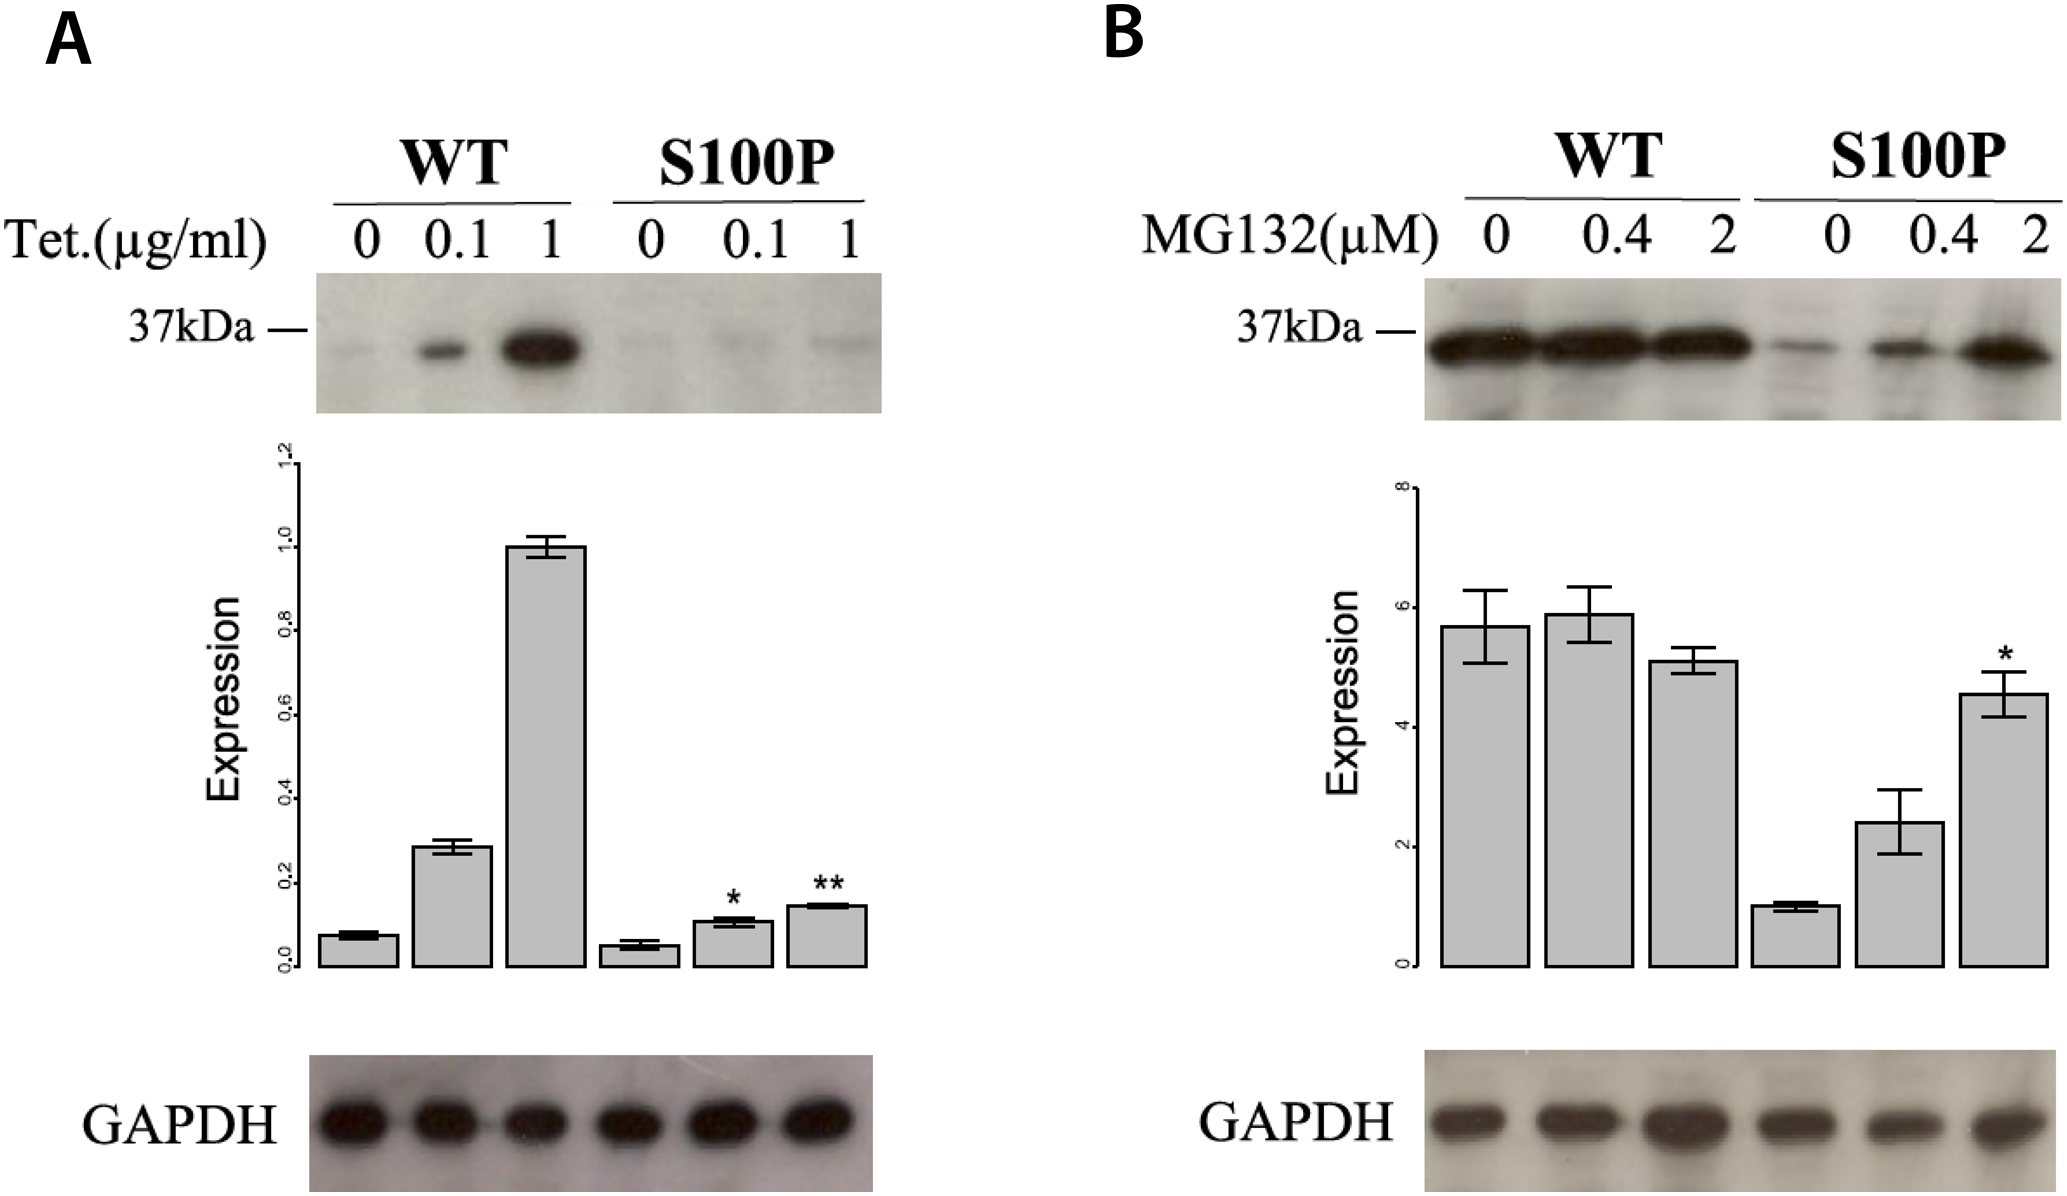 The mutation S100P reduces CA8 protein stability by means of proteasome-mediated CA8 degradation.